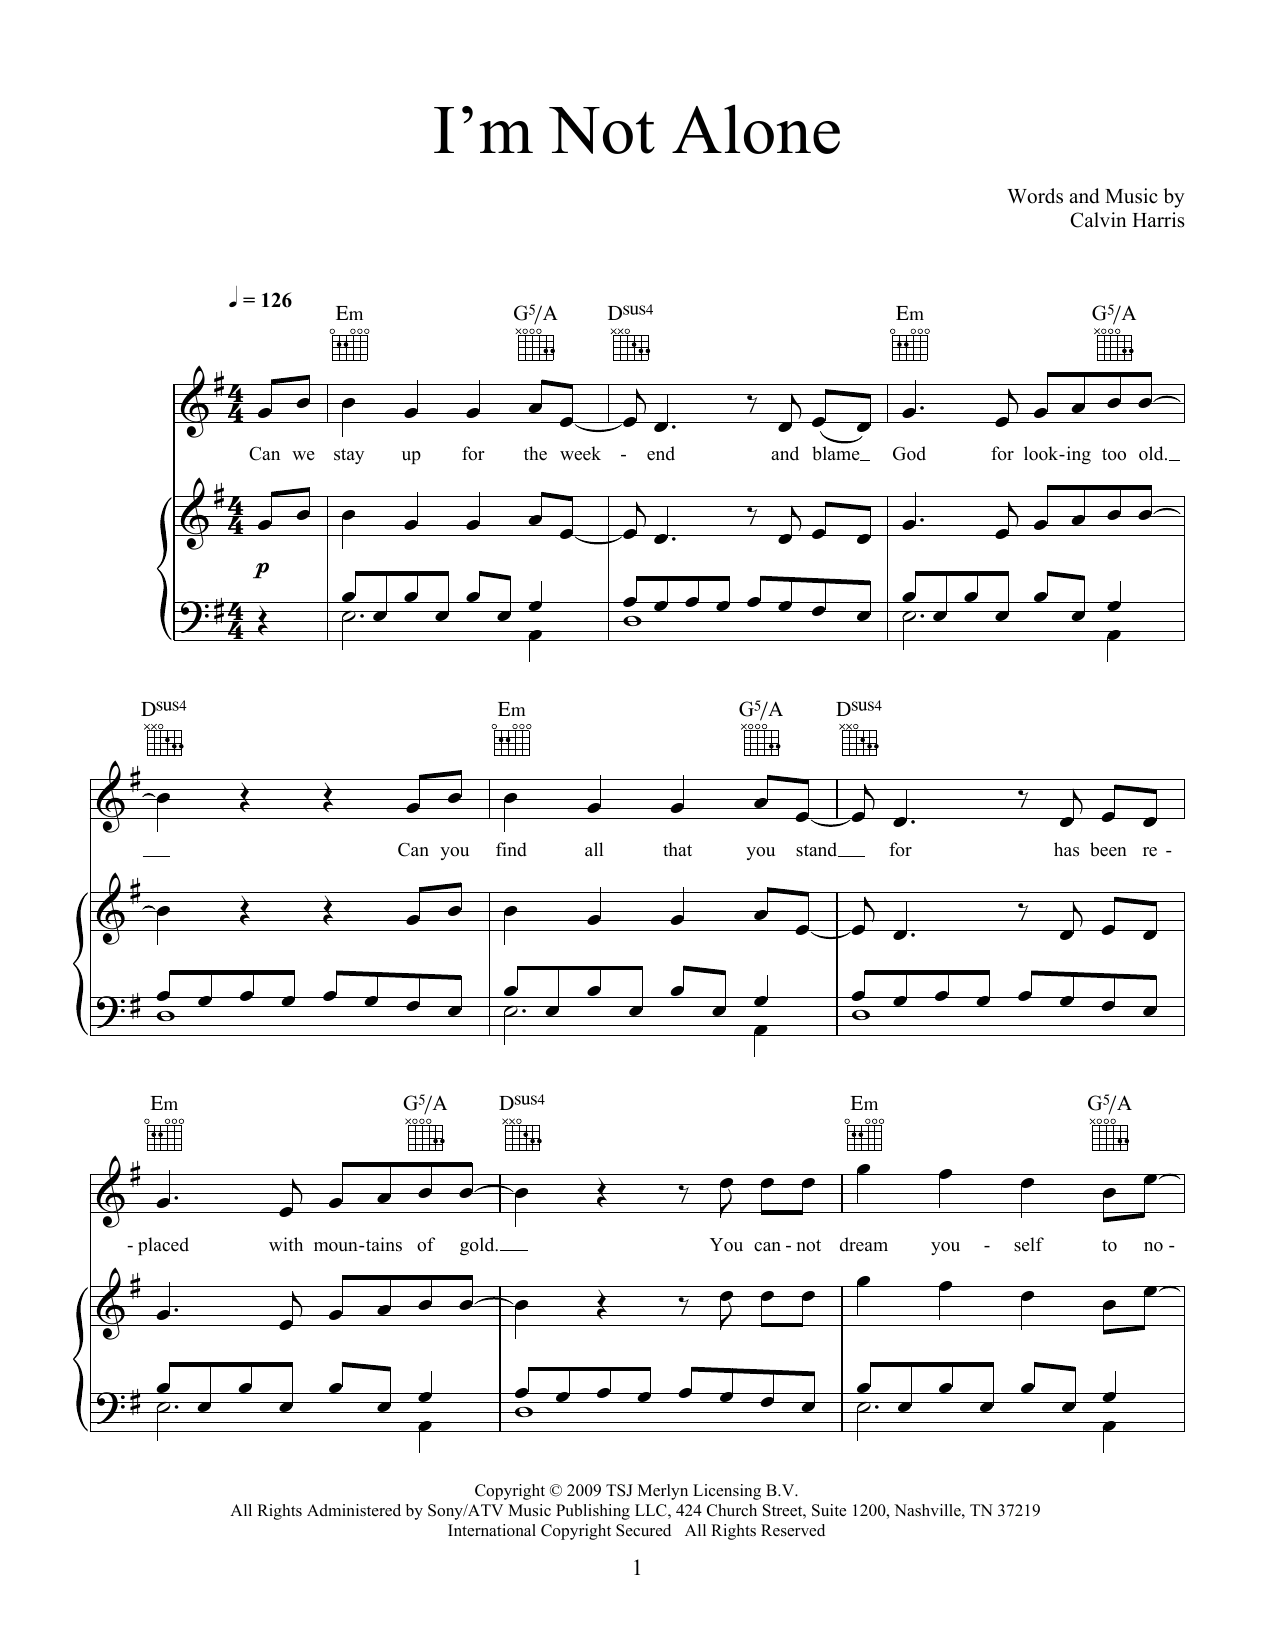 Calvin Harris I'm Not Alone sheet music notes and chords. Download Printable PDF.